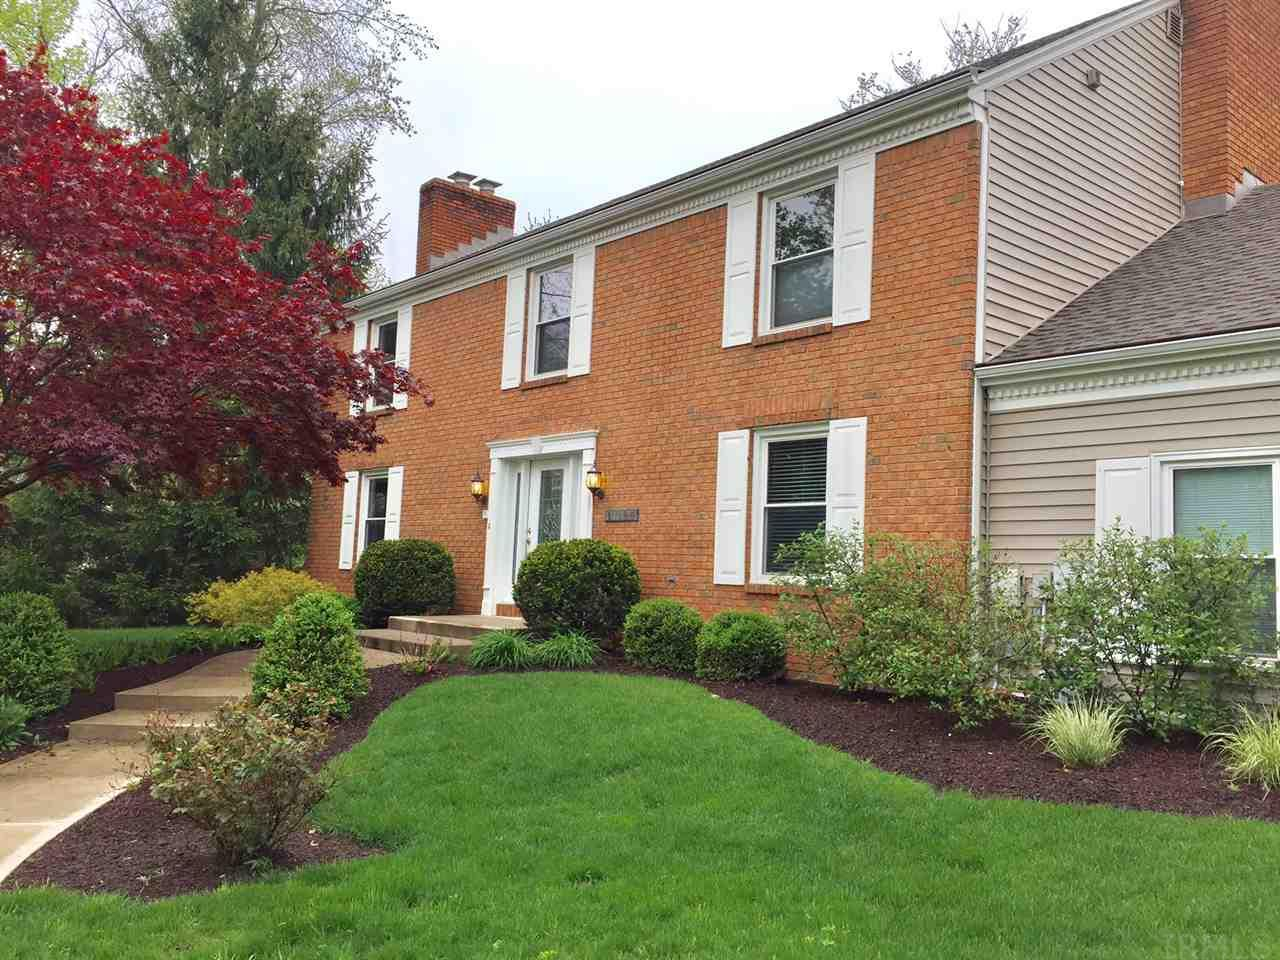 11125 Carriage, Fort Wayne, IN 46845